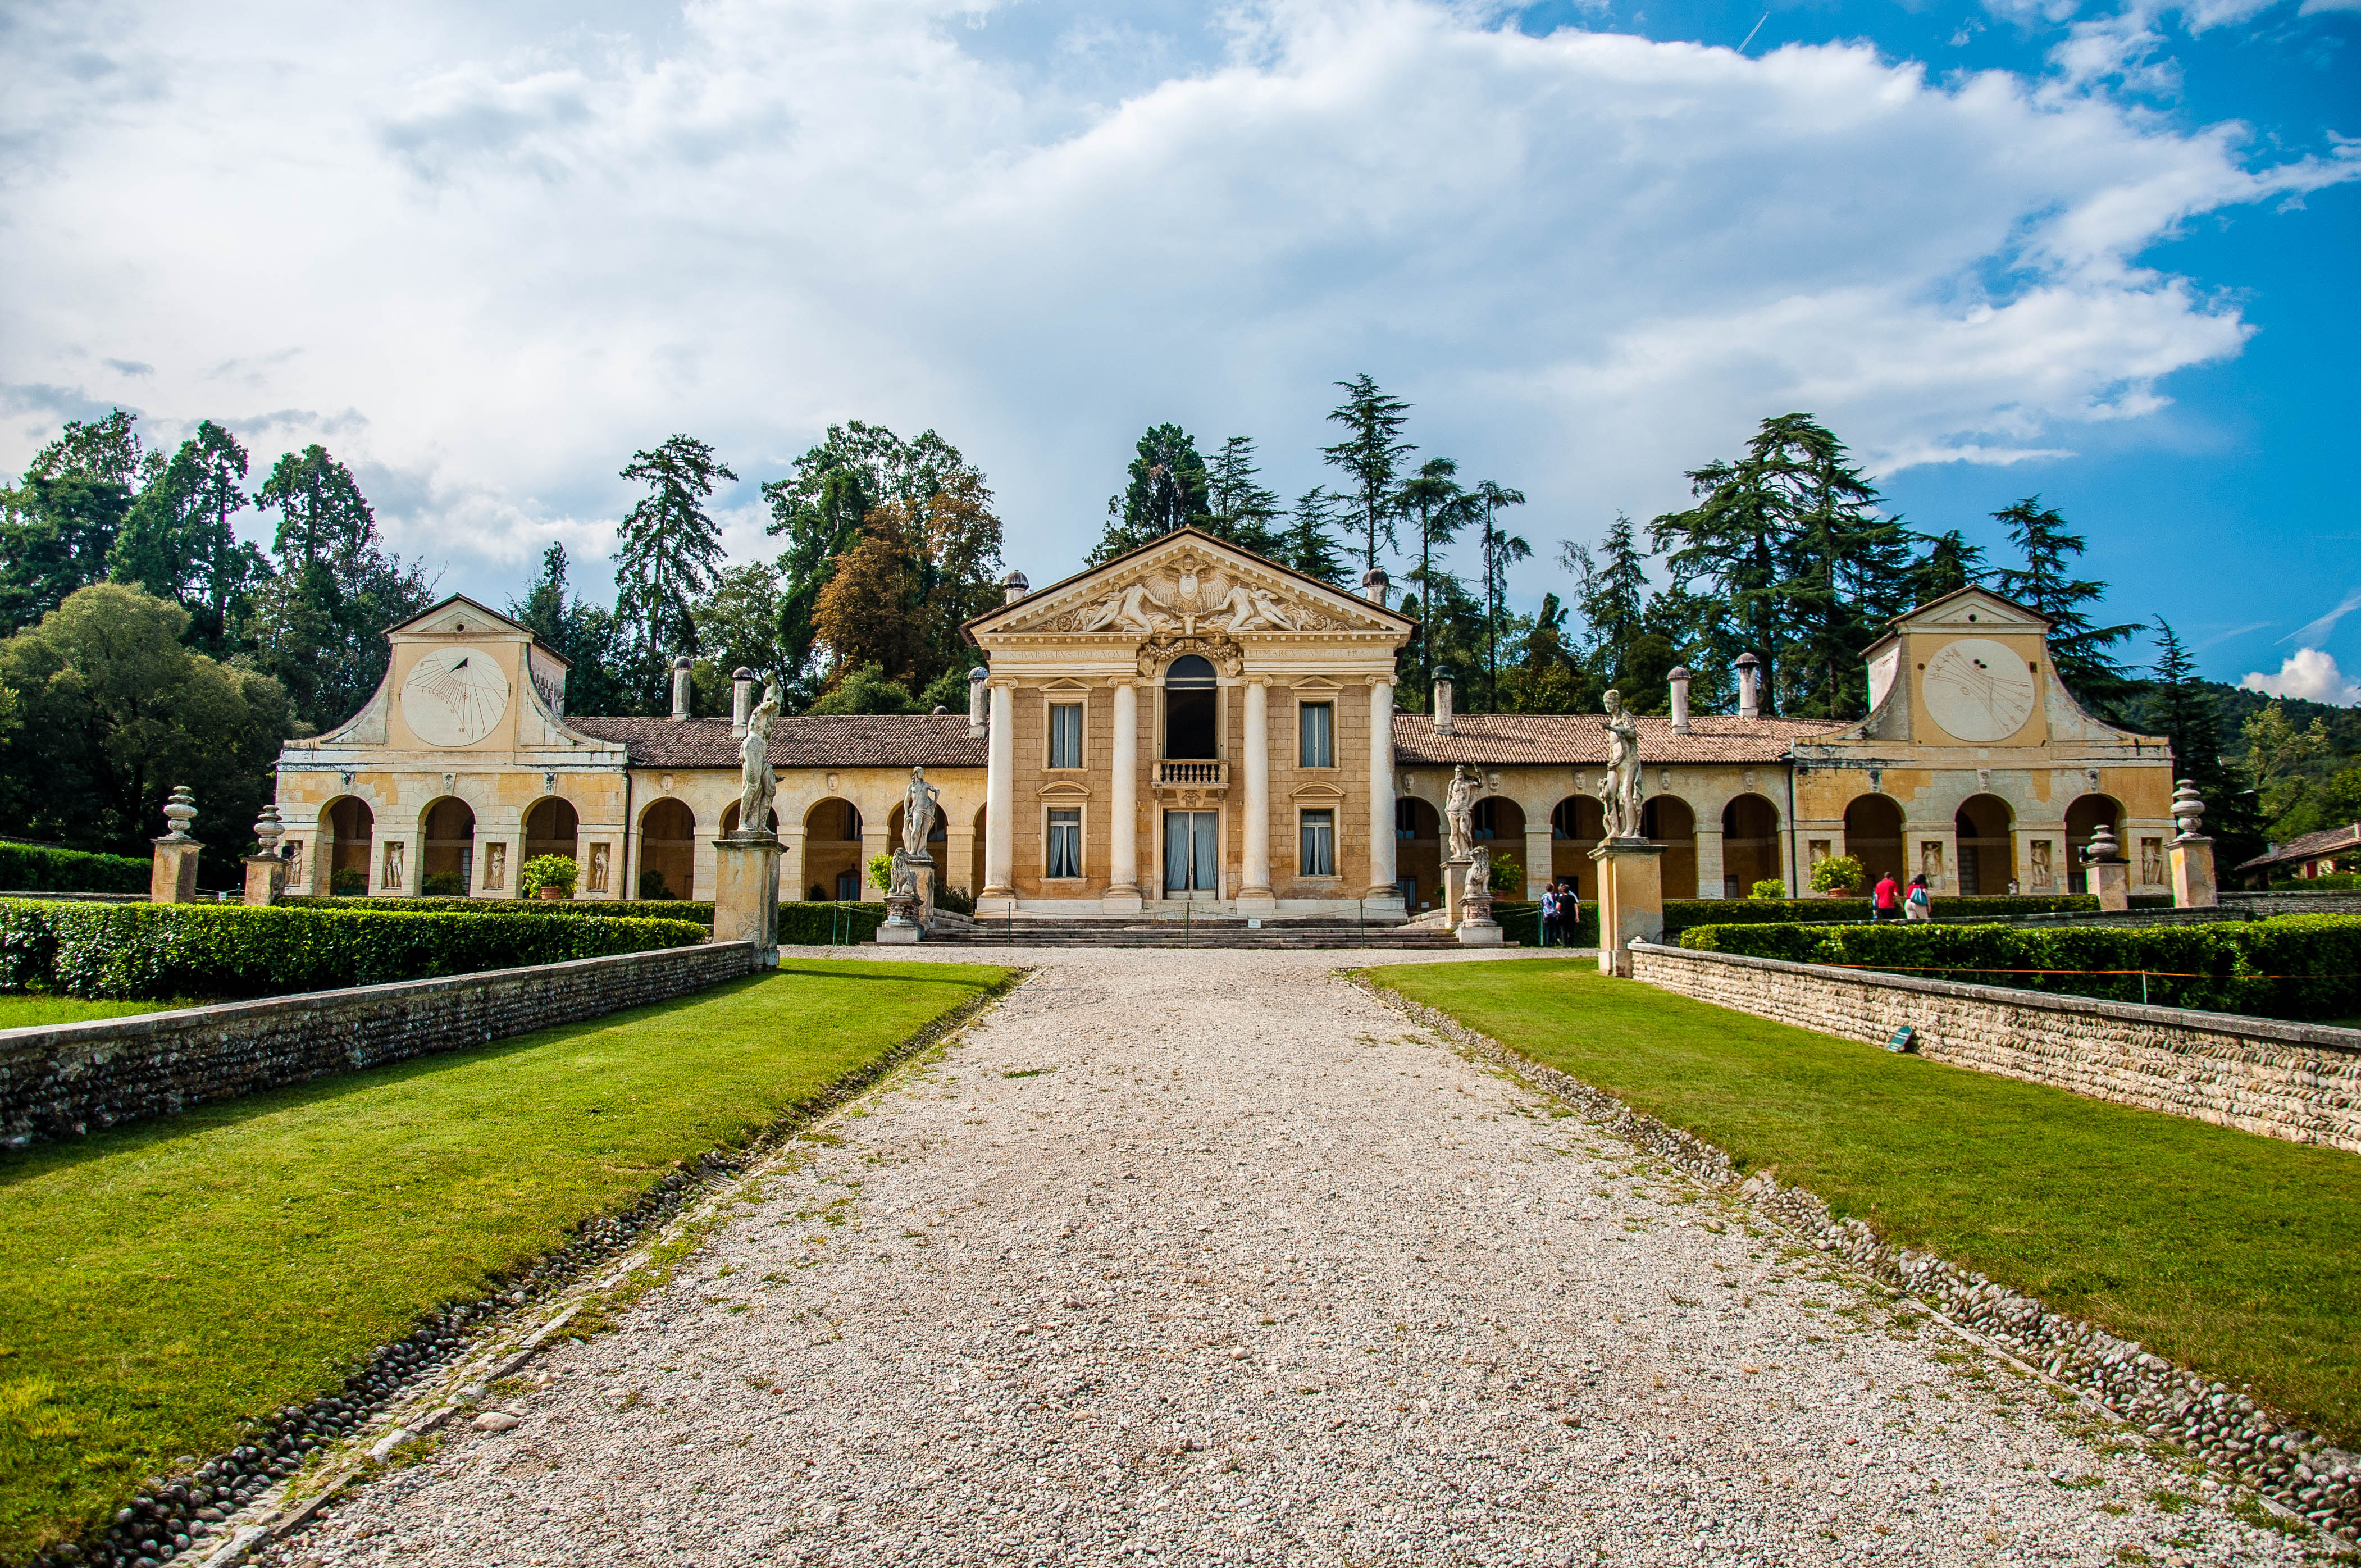 Villa Barbaro (also known as Villa di Maser) - Veneto, Italy - rossiwrites.com